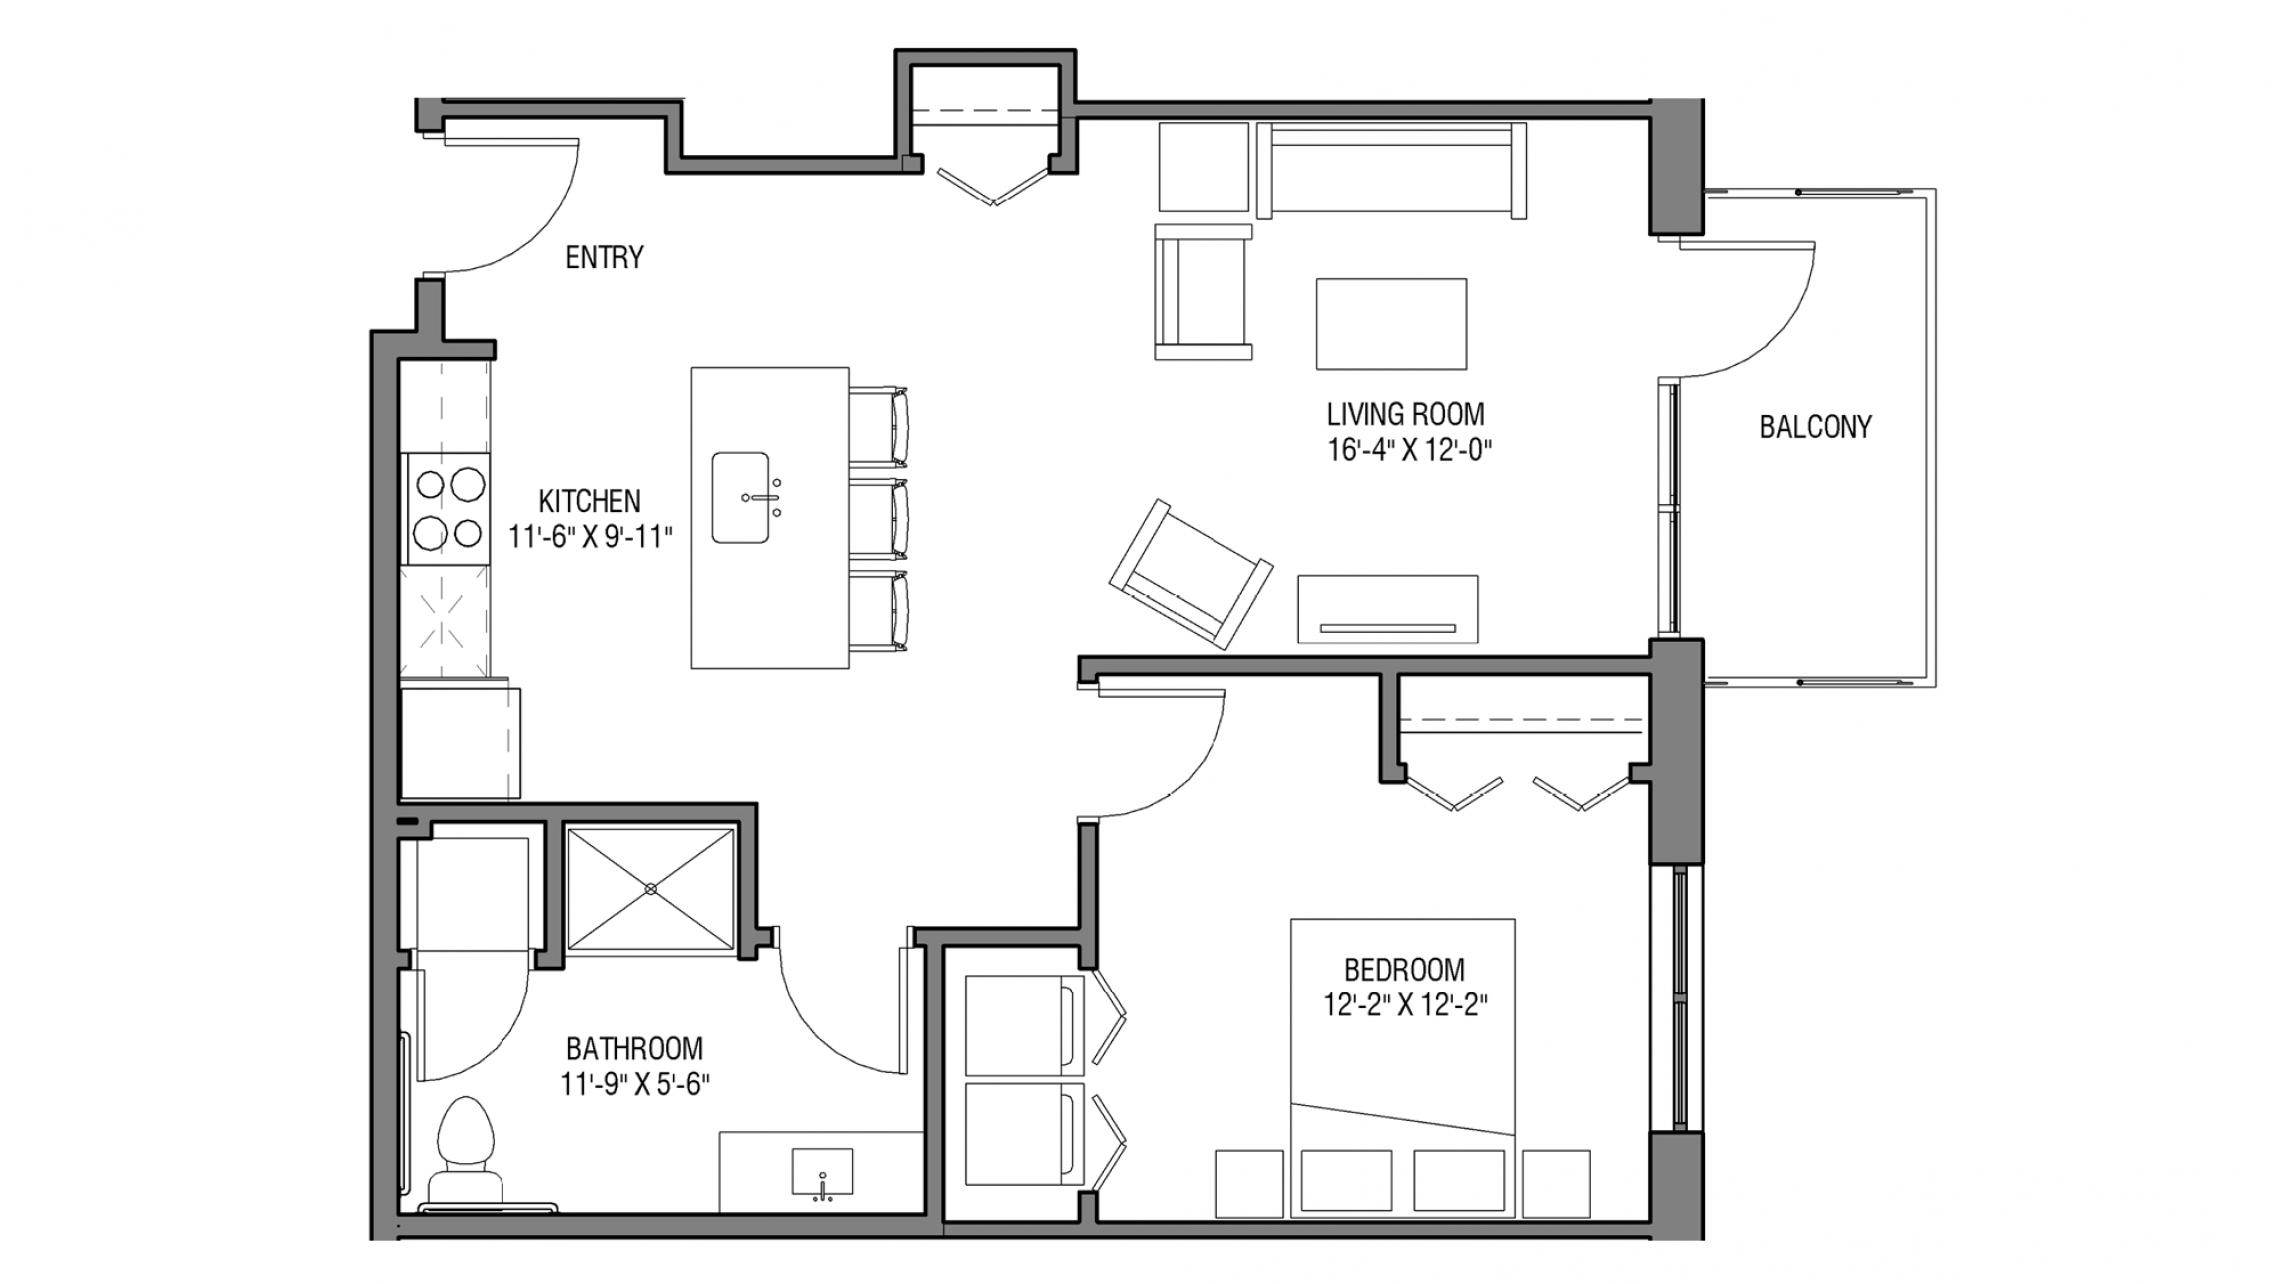 ULI Nine Line 222 - One Bedroom, One Bathroom